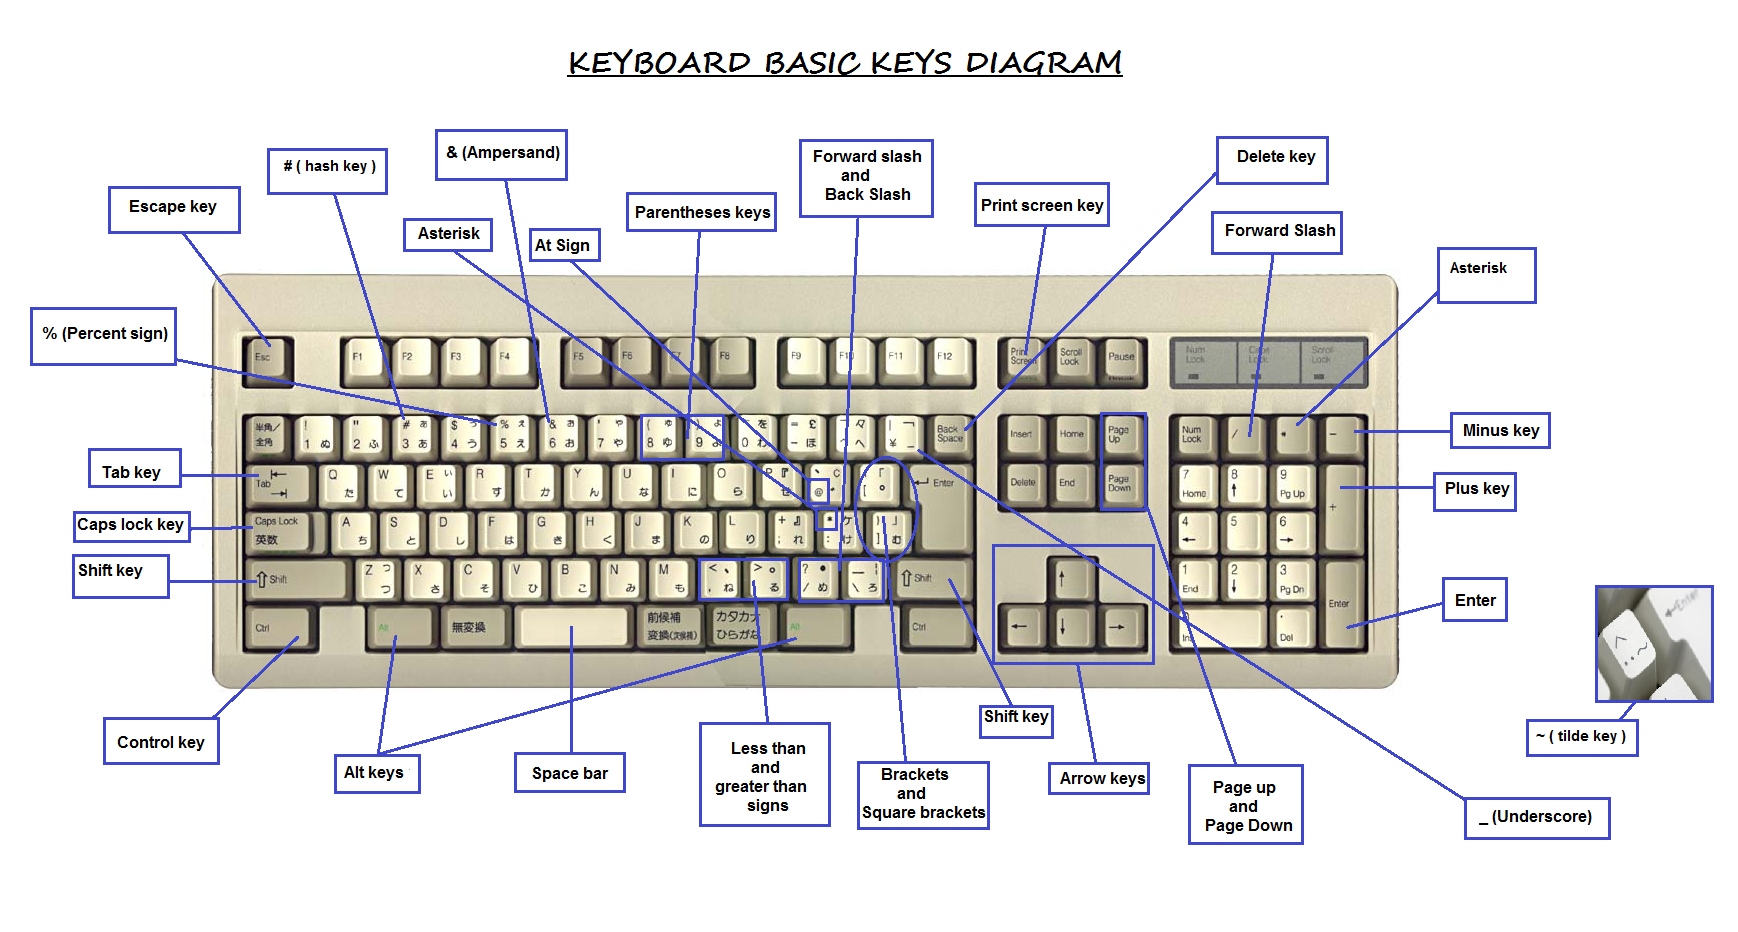 Funny Faces With Keyboard Symbols How To Make Shapes